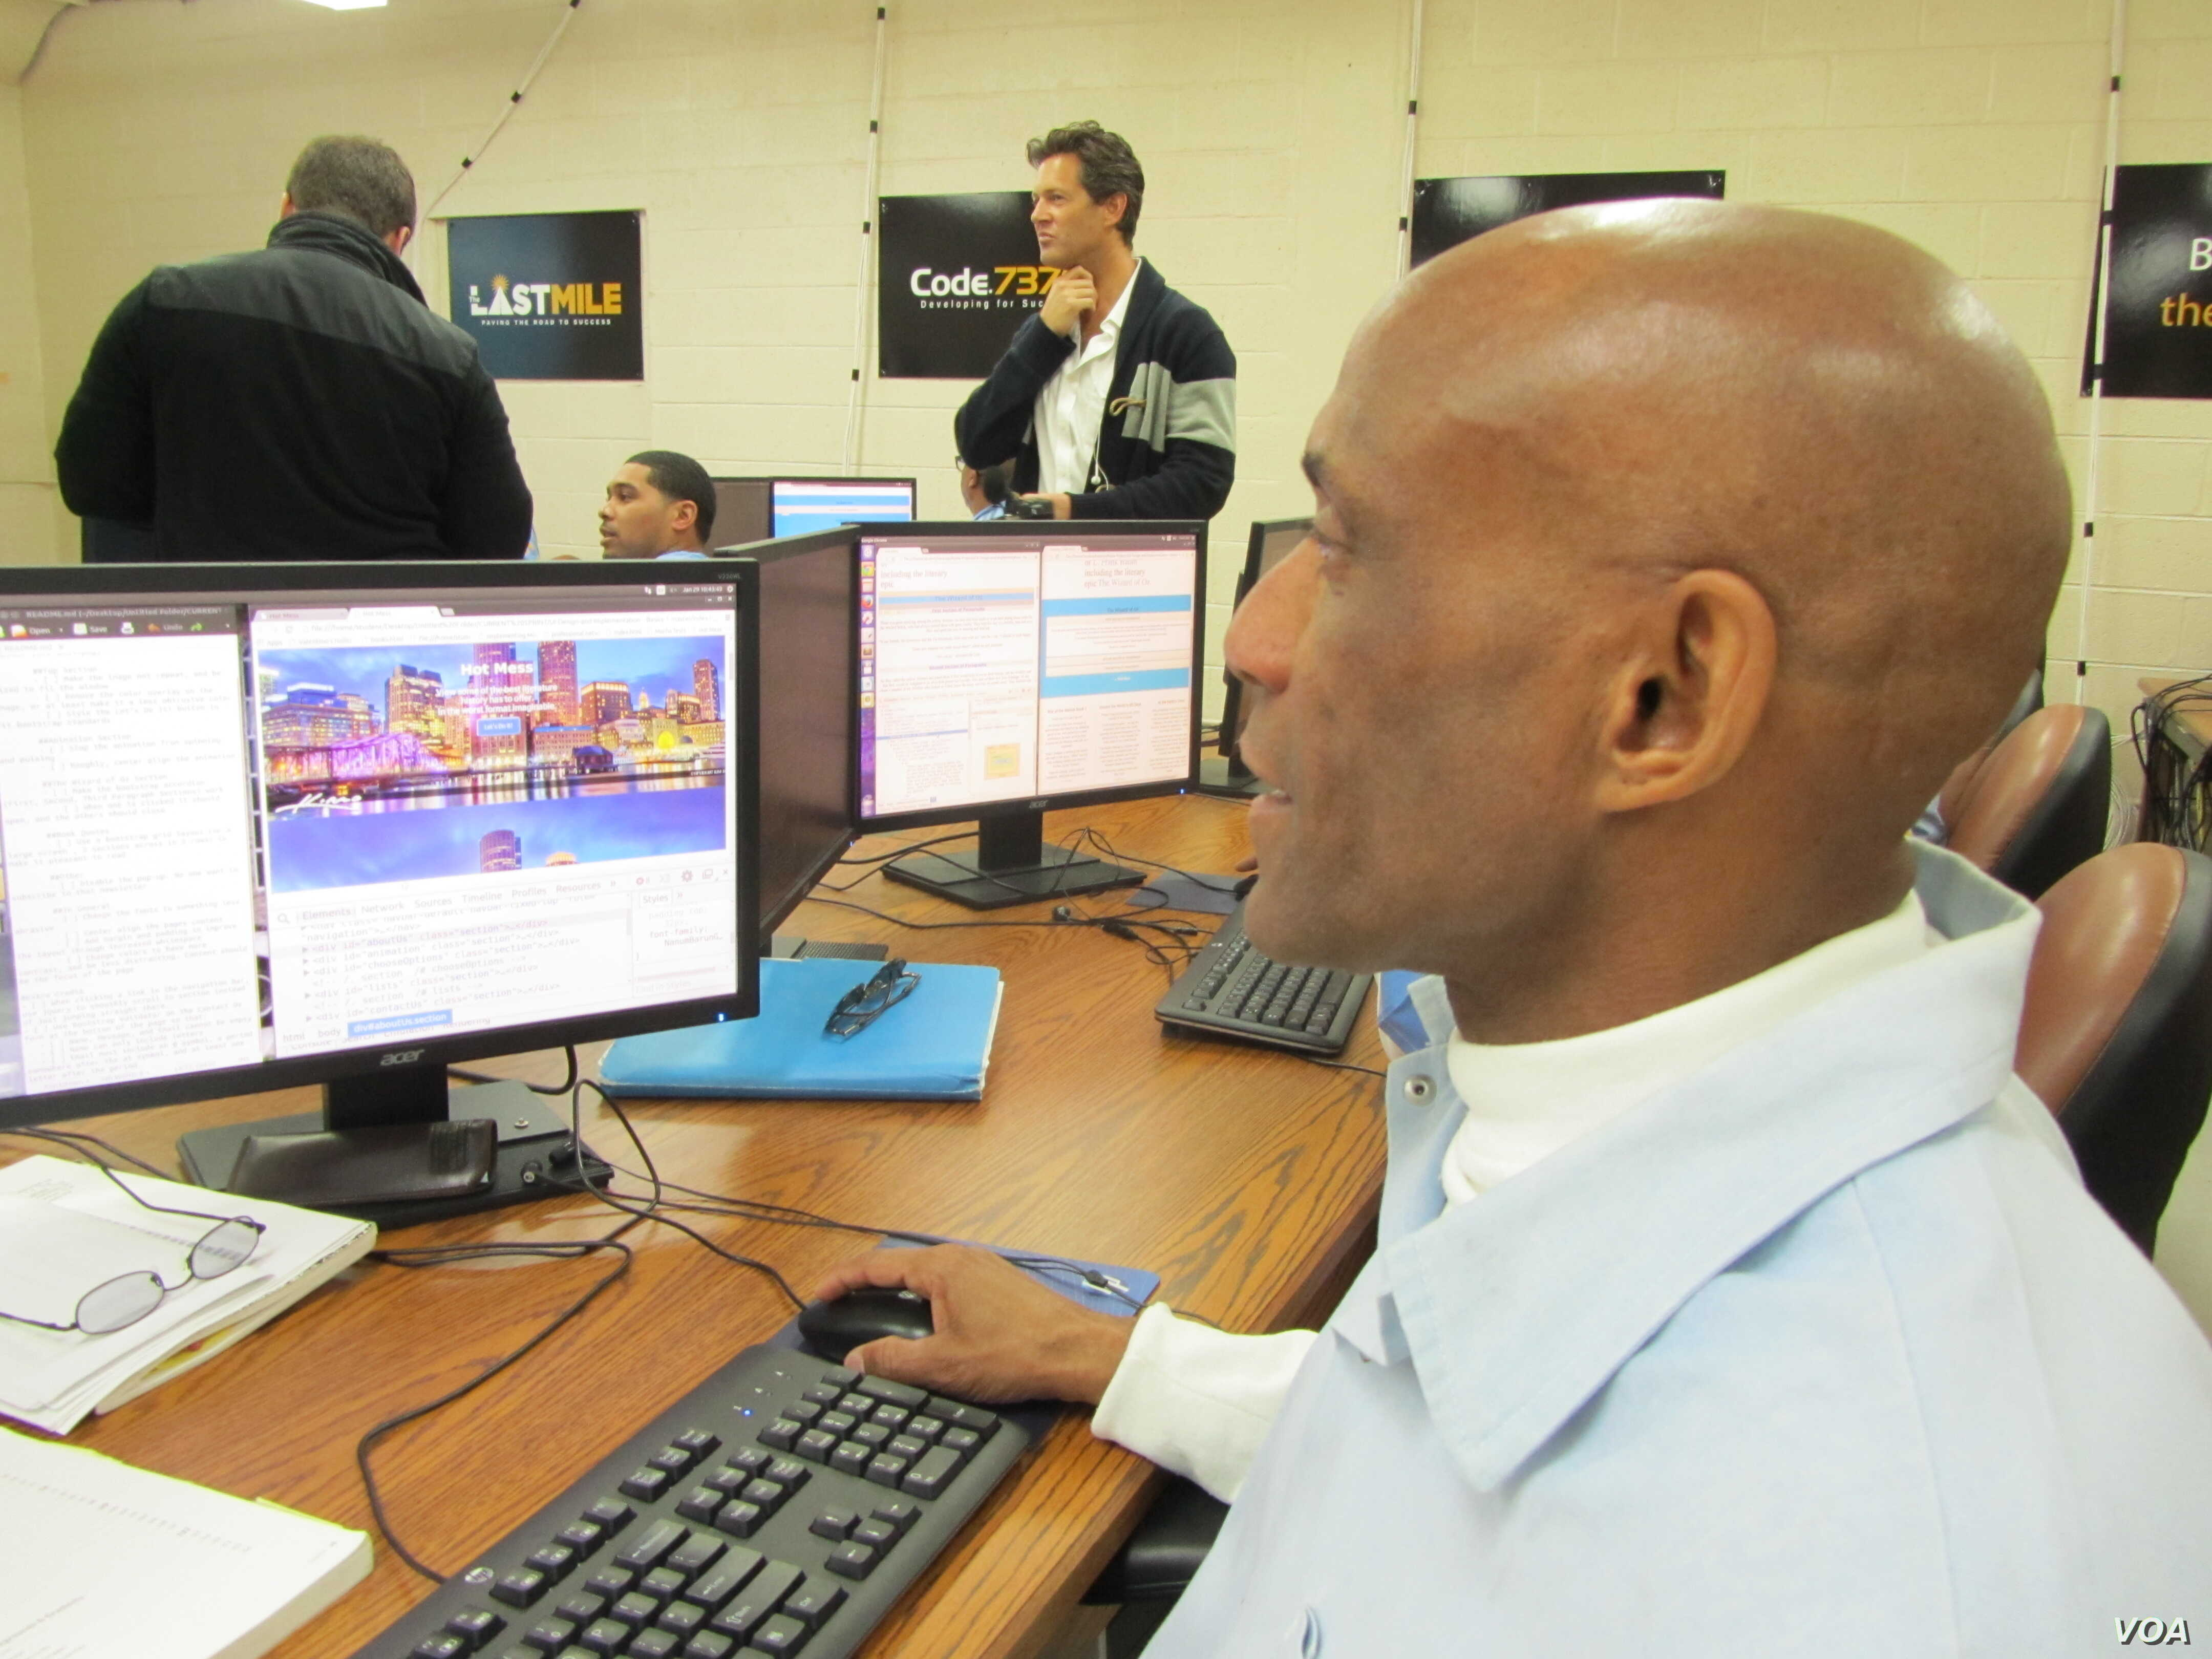 Gary Valentino Hollis uses his skills to create a webpage. (VOA / JoAnn Mar)